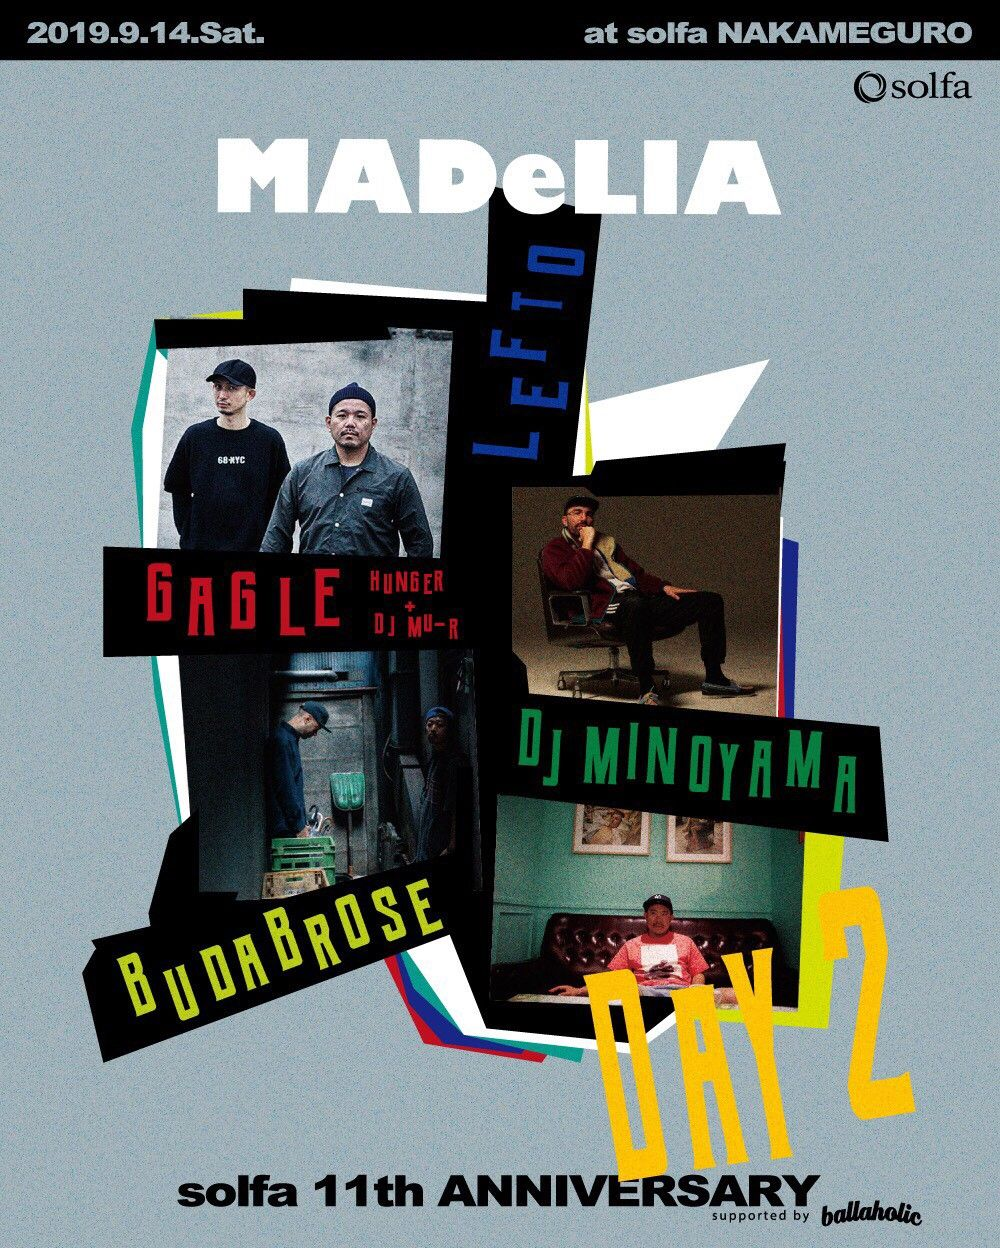 "solfa 11th Anniversary -supported by ballaholic- DAY 2 ""MADeLIA"""